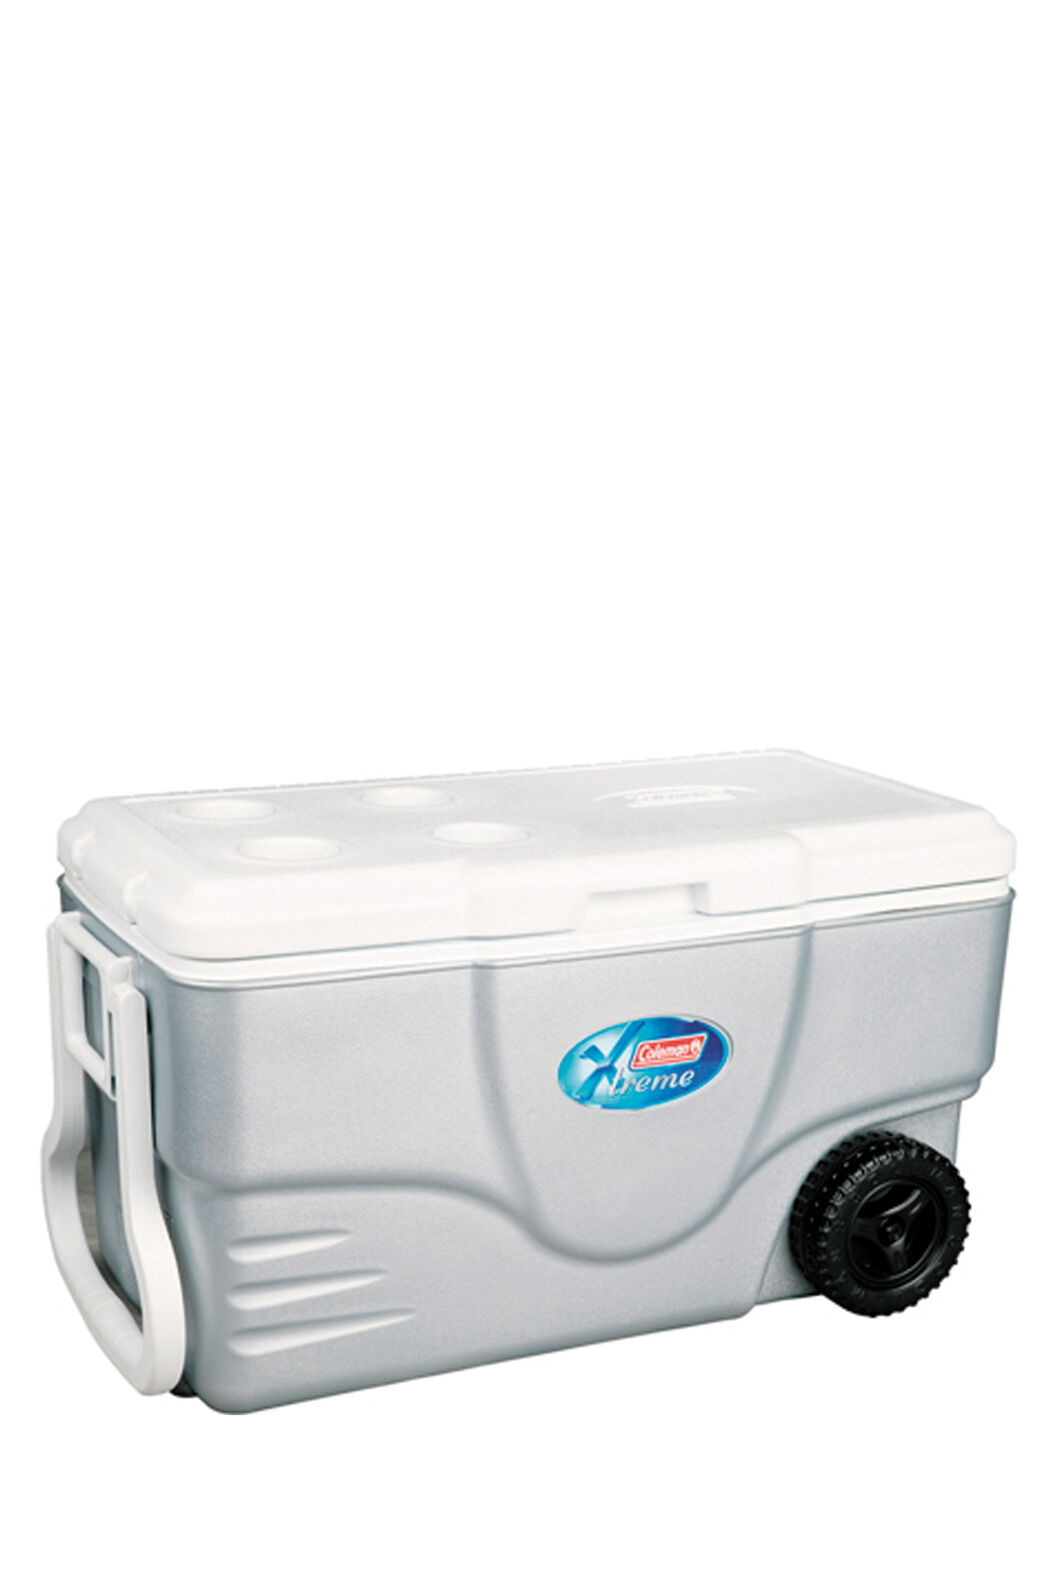 Coleman Xtreme 58LT Wheeled Cooler, None, hi-res